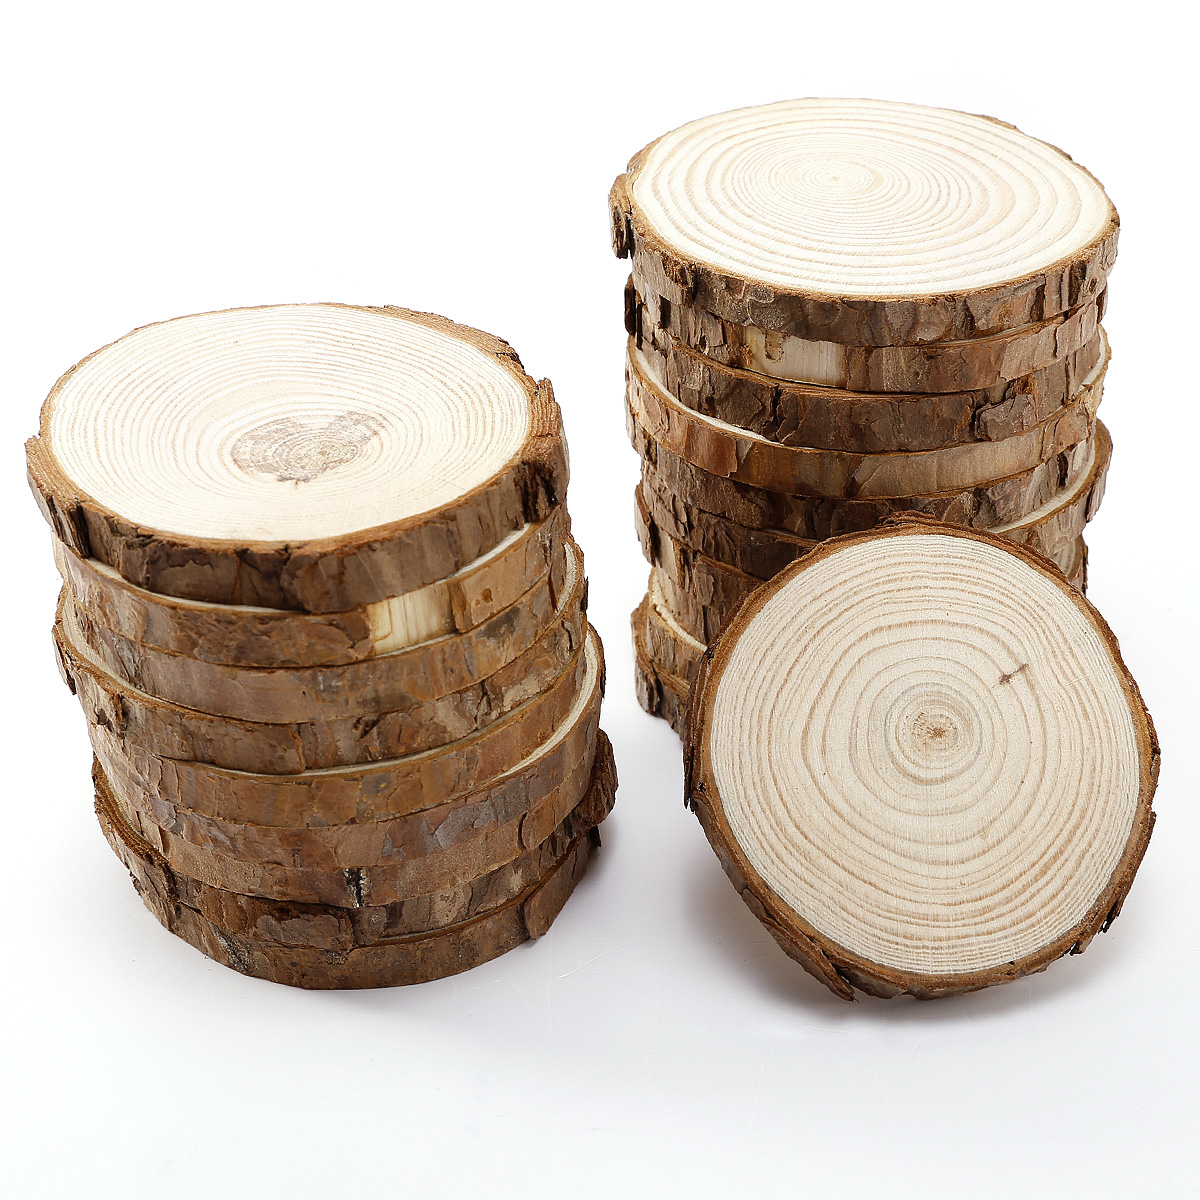 20pcs wooden wood log slices natural tree bark plaque for Wood trunk slices